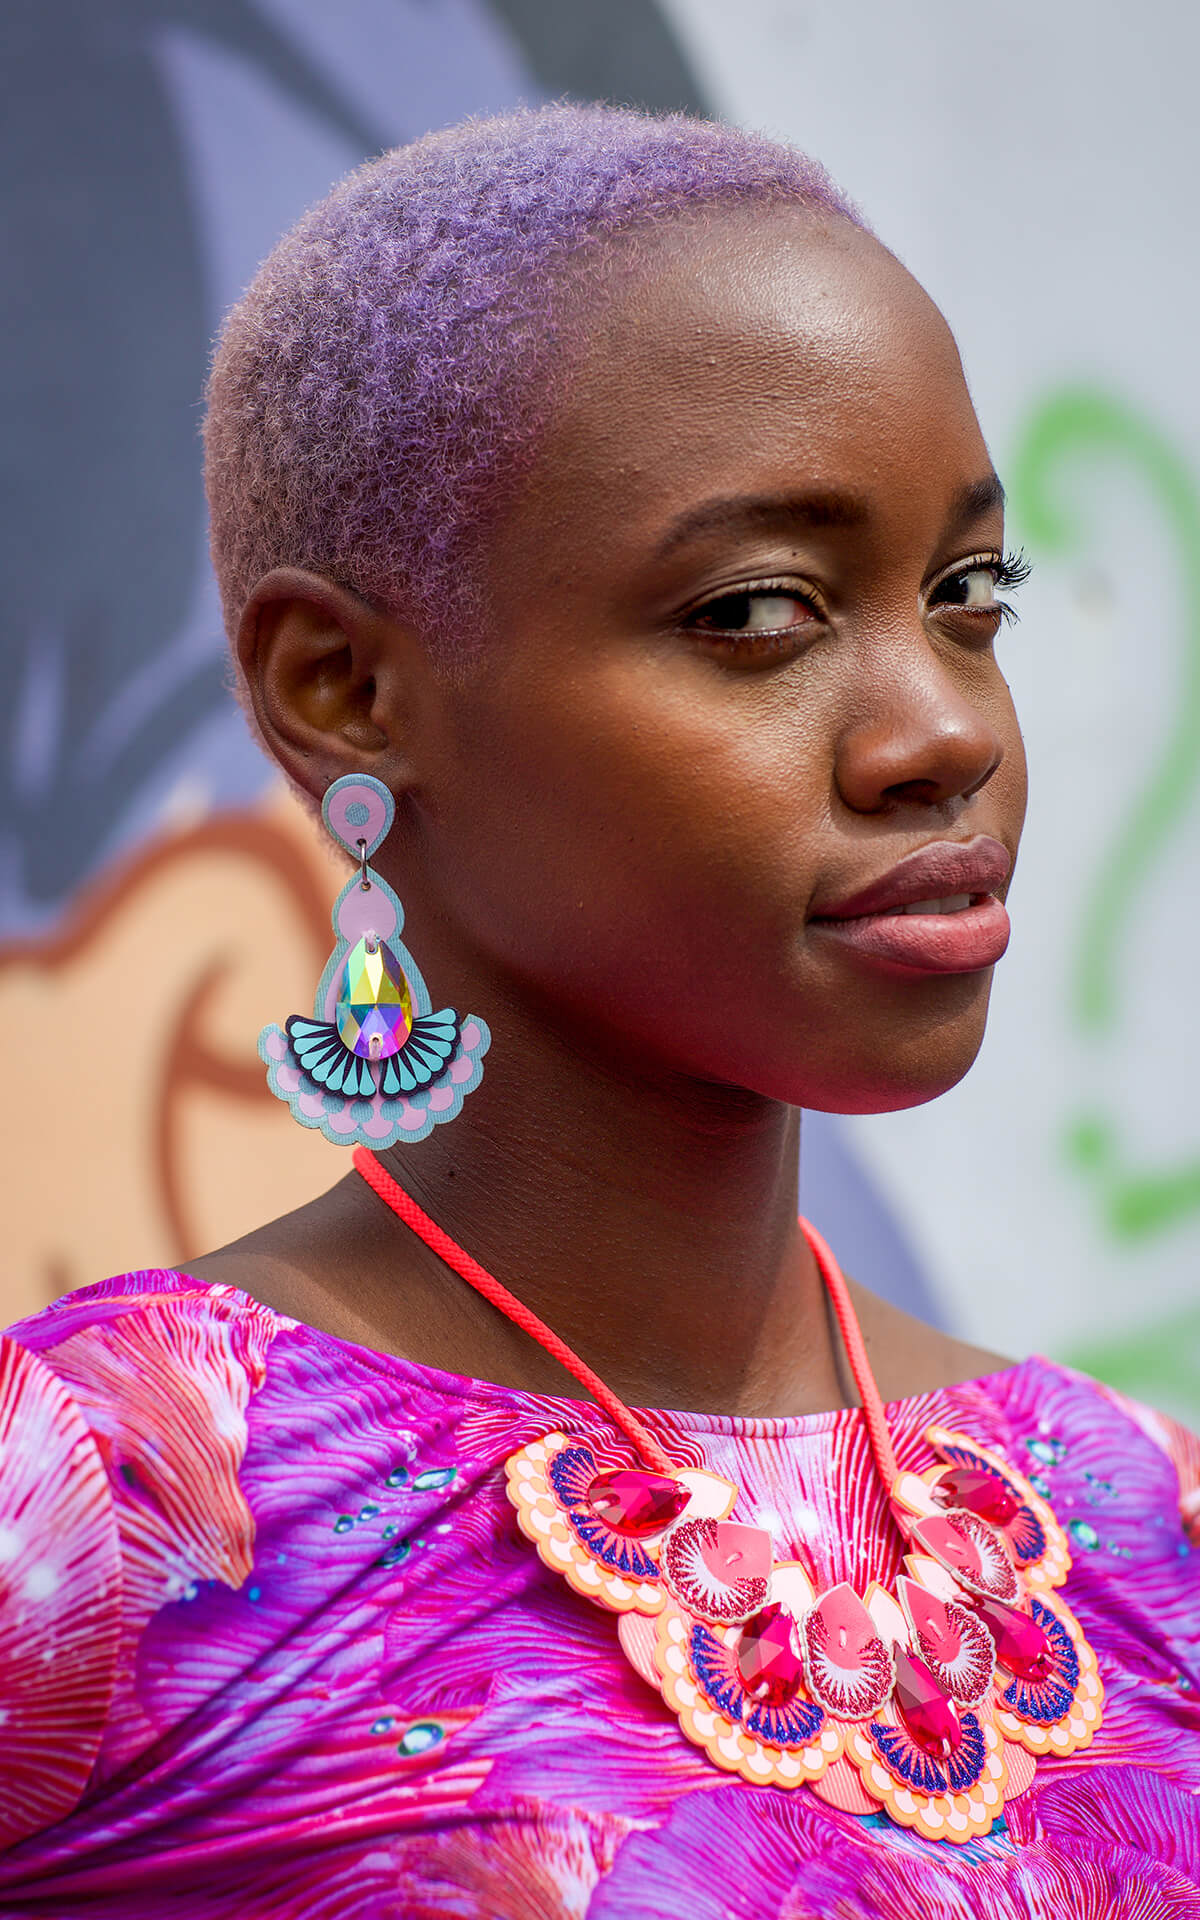 A portrait photo of Cidella, a young black woman with short lilac hair wearing a bright pink top and a colourful pair of laser cut fabric earrings and bib necklace